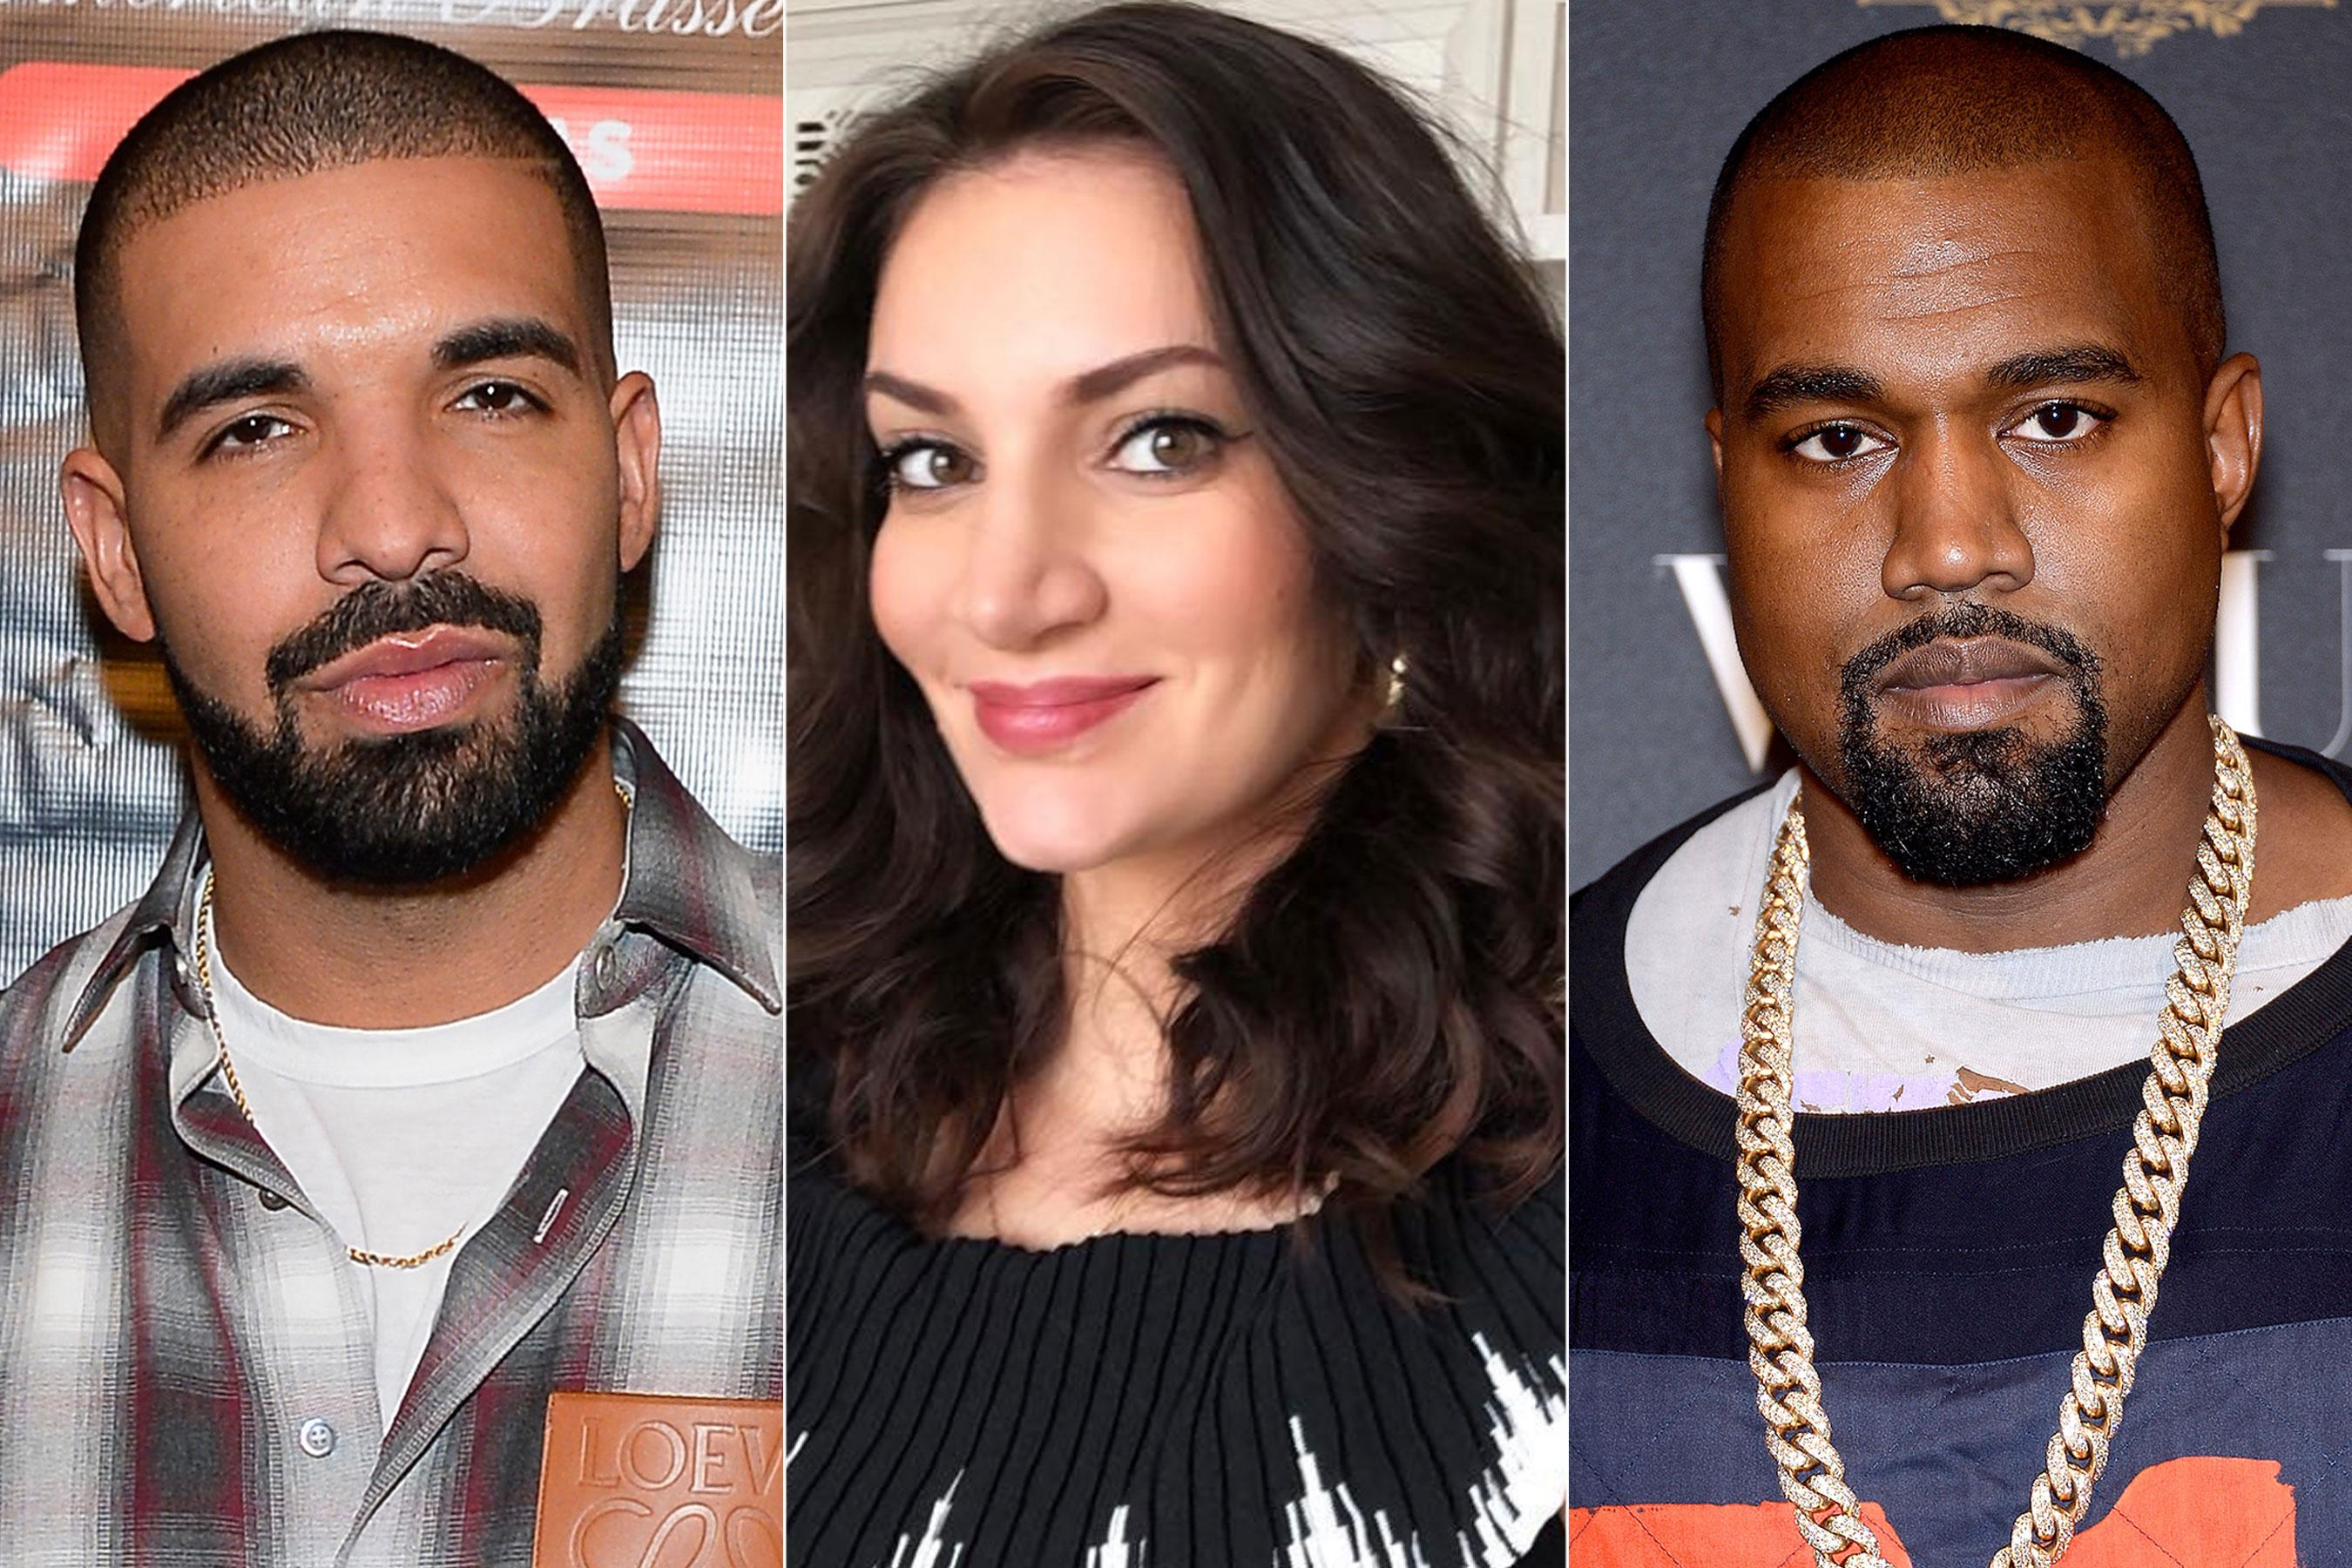 65311dda3f58 Sophie Brussaux, the Mother of Drake's Child, Criticizes Kanye West Amid  Rappers' Ongoing Feud